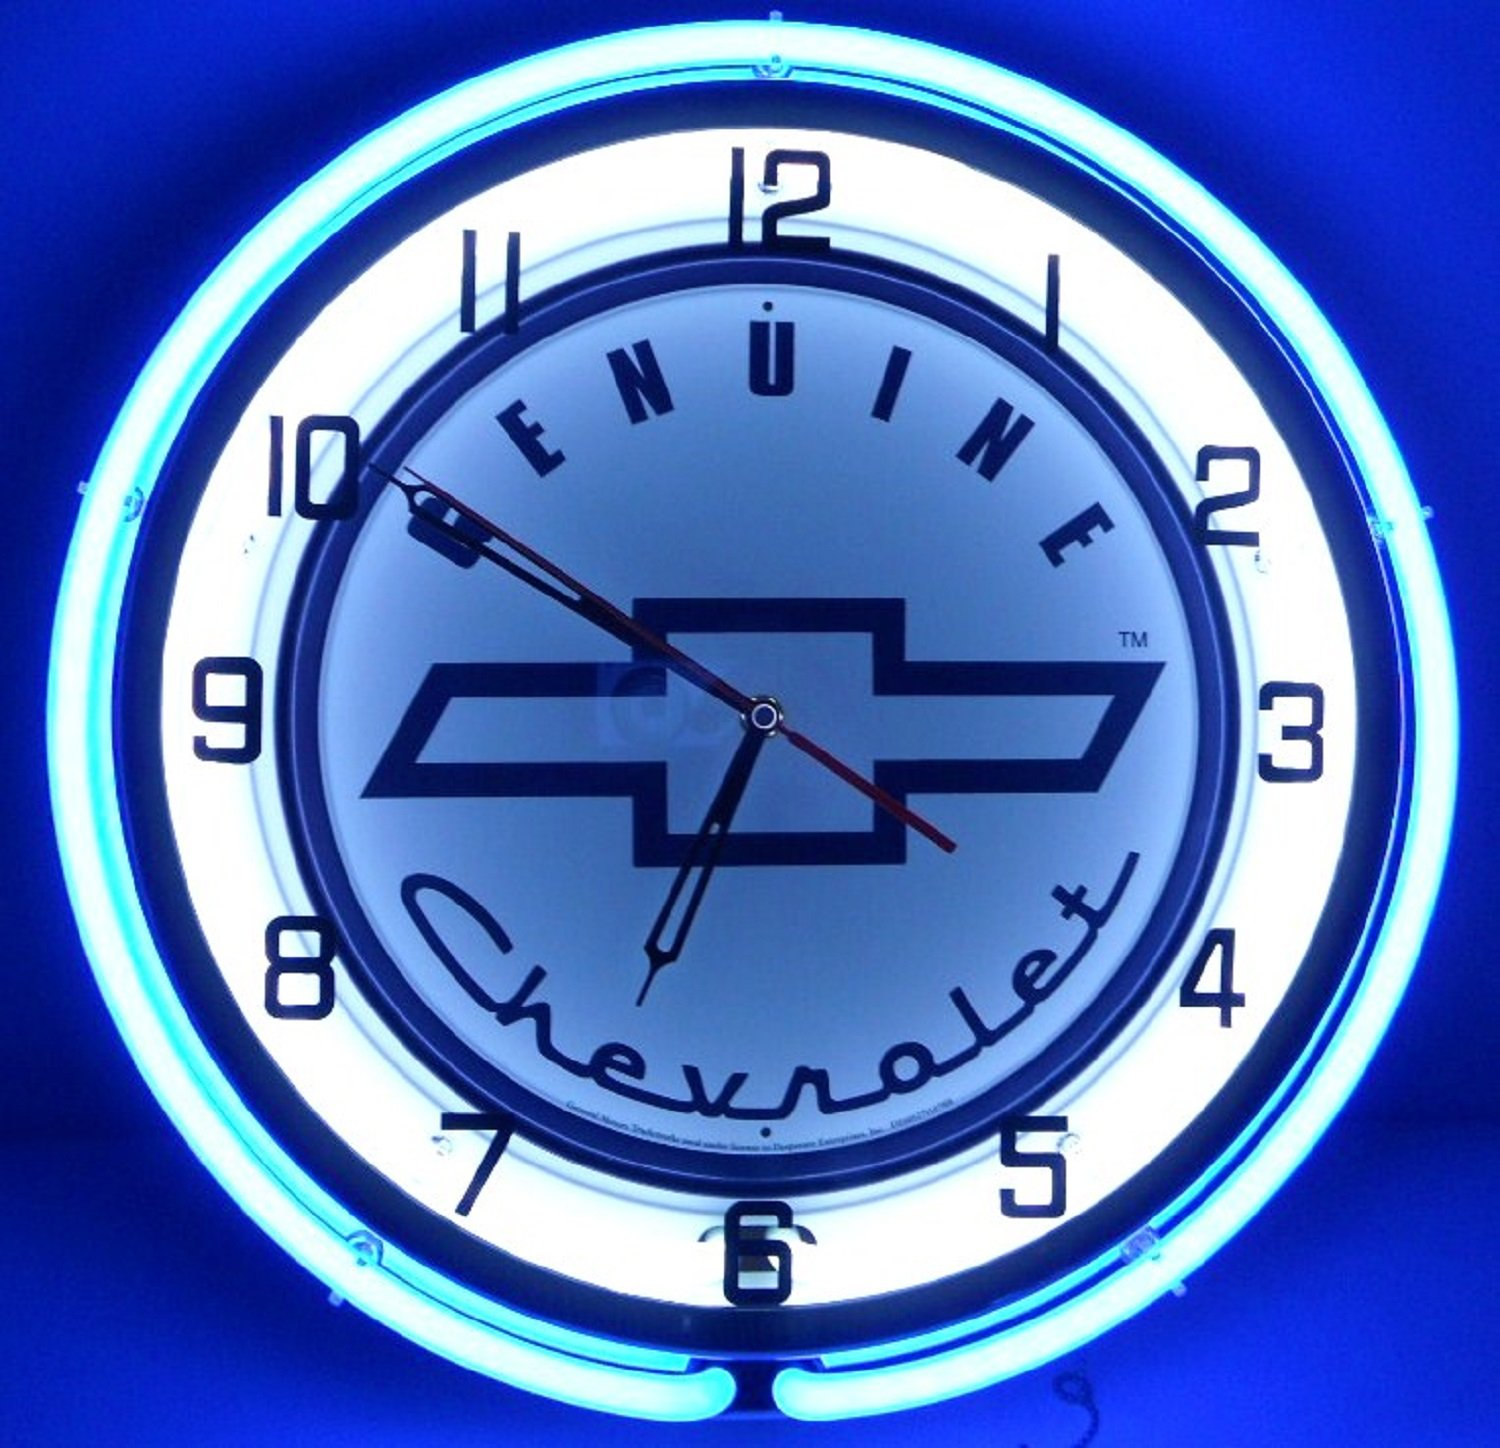 Amazon genuine chevy 18 double neon lighted wall clock sign amazon genuine chevy 18 double neon lighted wall clock sign white blue home improvement amipublicfo Image collections